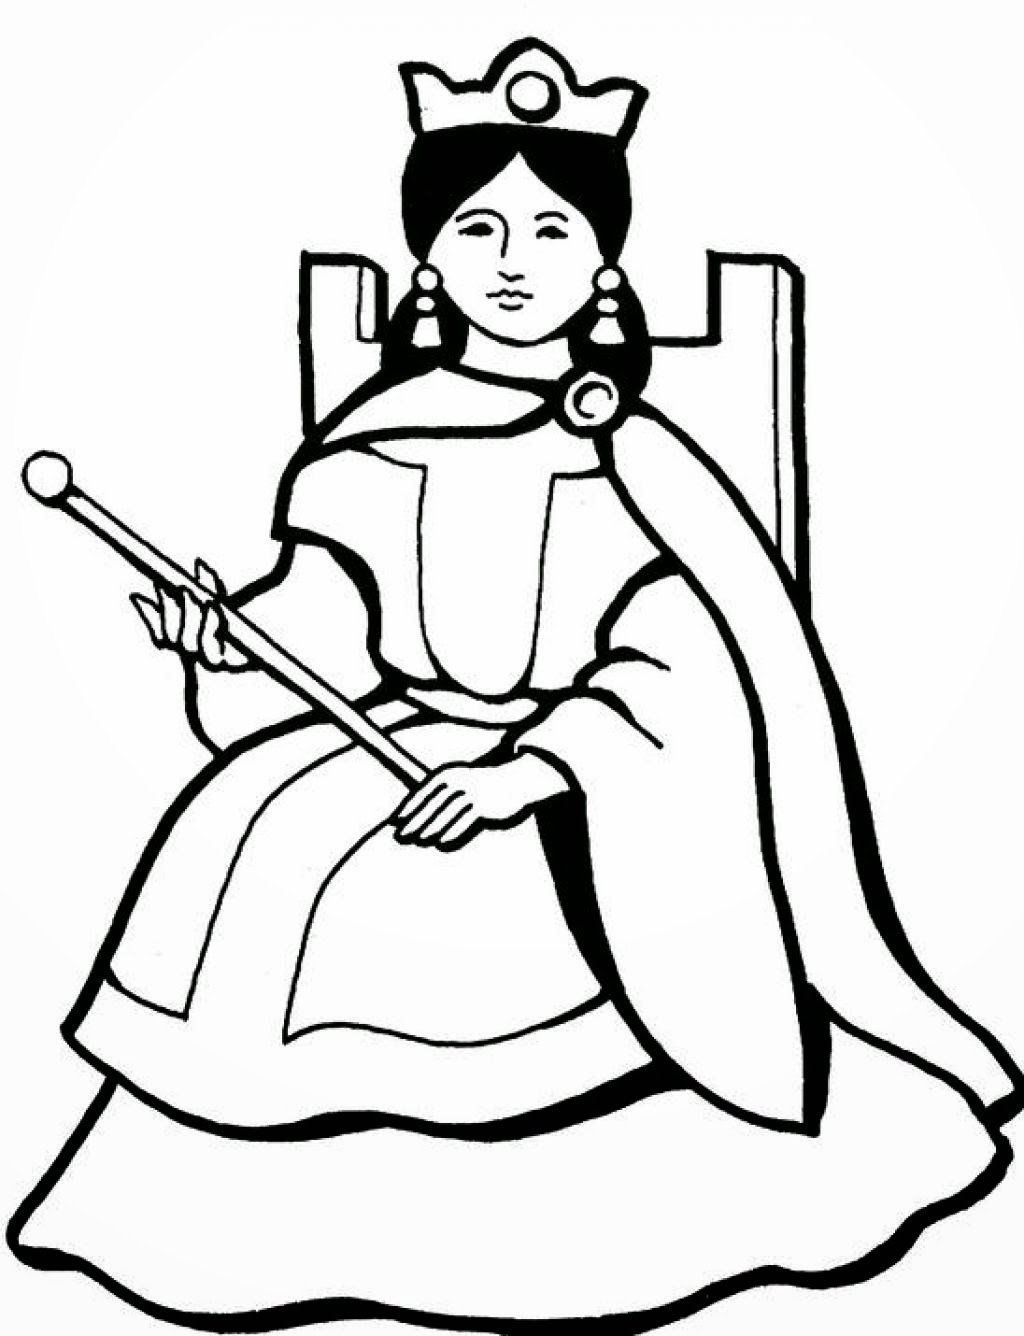 coloring page queen queen coloring pages free download on clipartmag queen coloring page 1 1